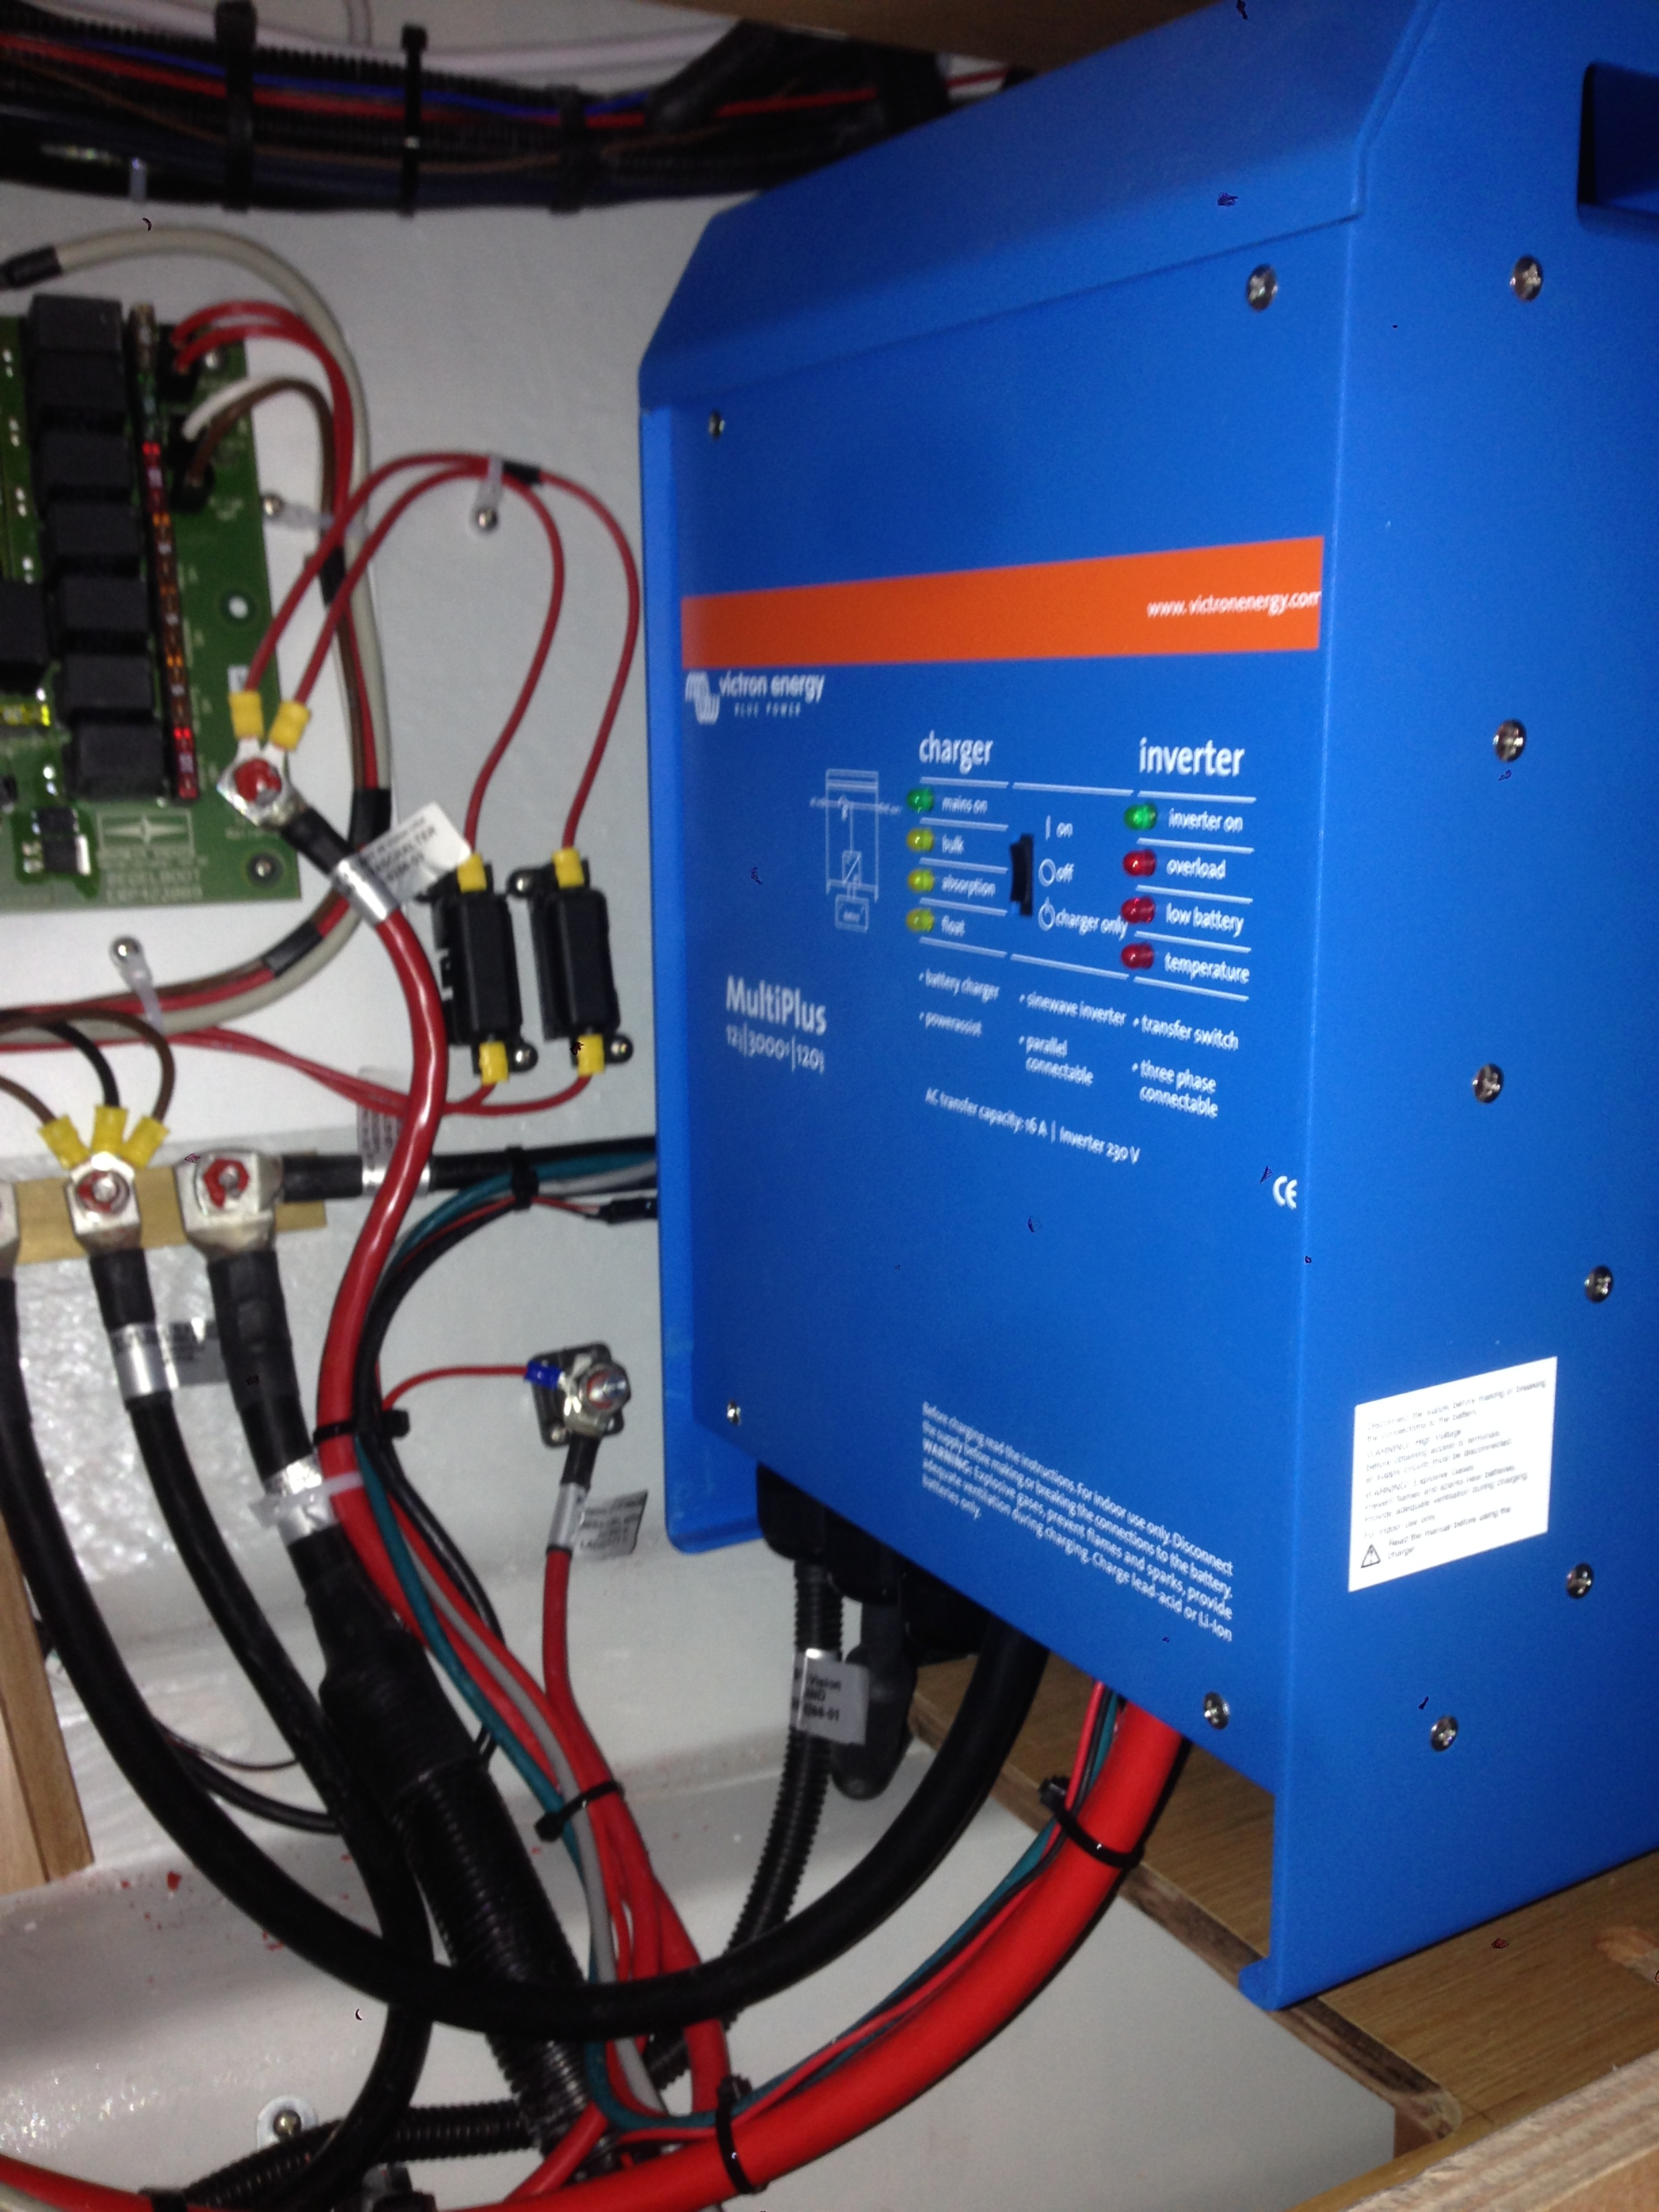 Laddare/inverter installation